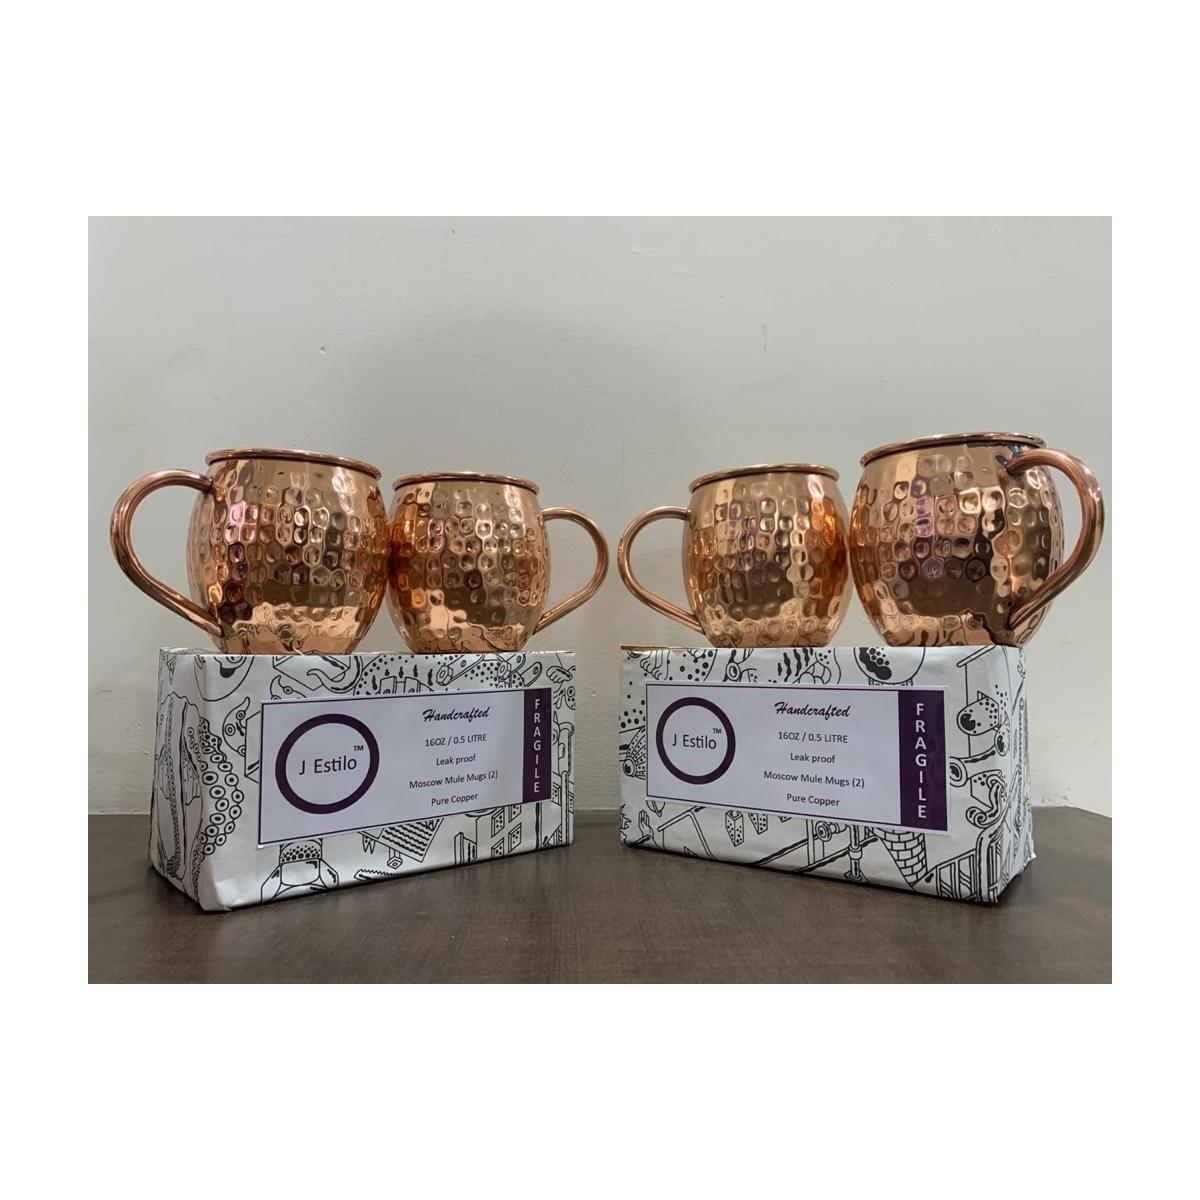 [Gift Set] JEstilo Pure Moscow Mule Copper Mugs – Leak proof Hammered Handcrafted design Set of 2 Pure Solid Copper Cups -16 oz – 22 Gauge Gift Product